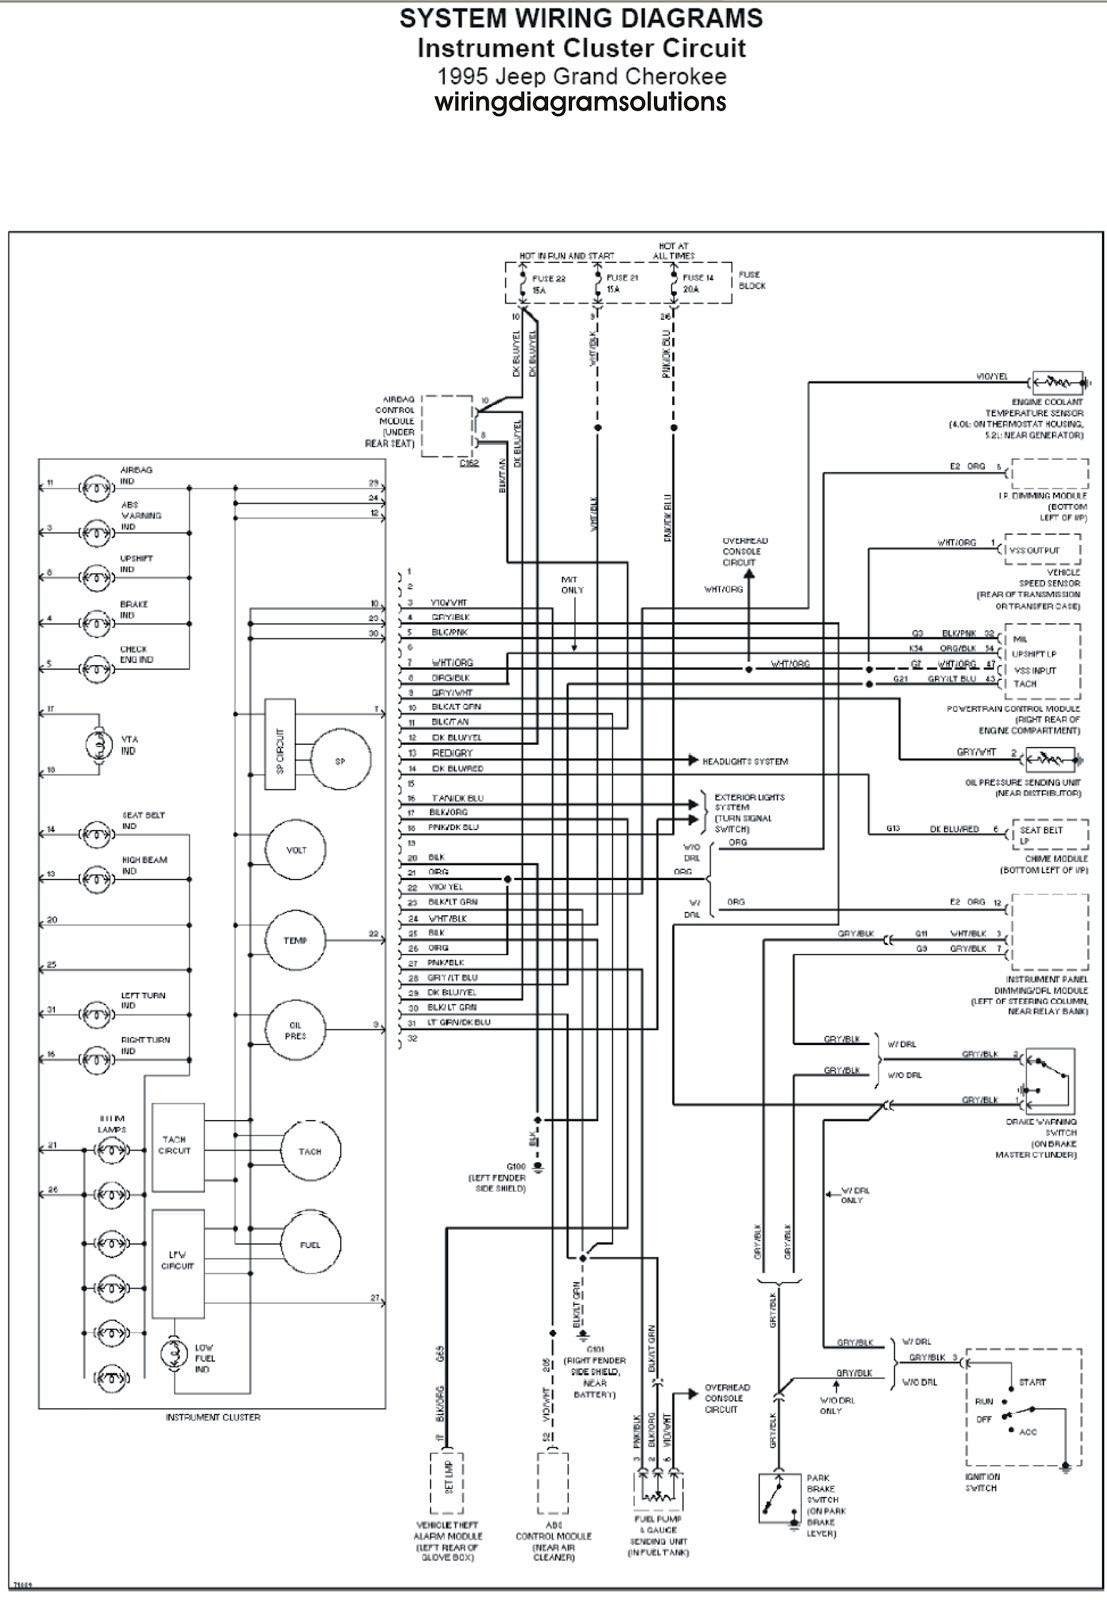 1999 Jeep Grand Cherokee Infinity Stereo Wiring Diagram